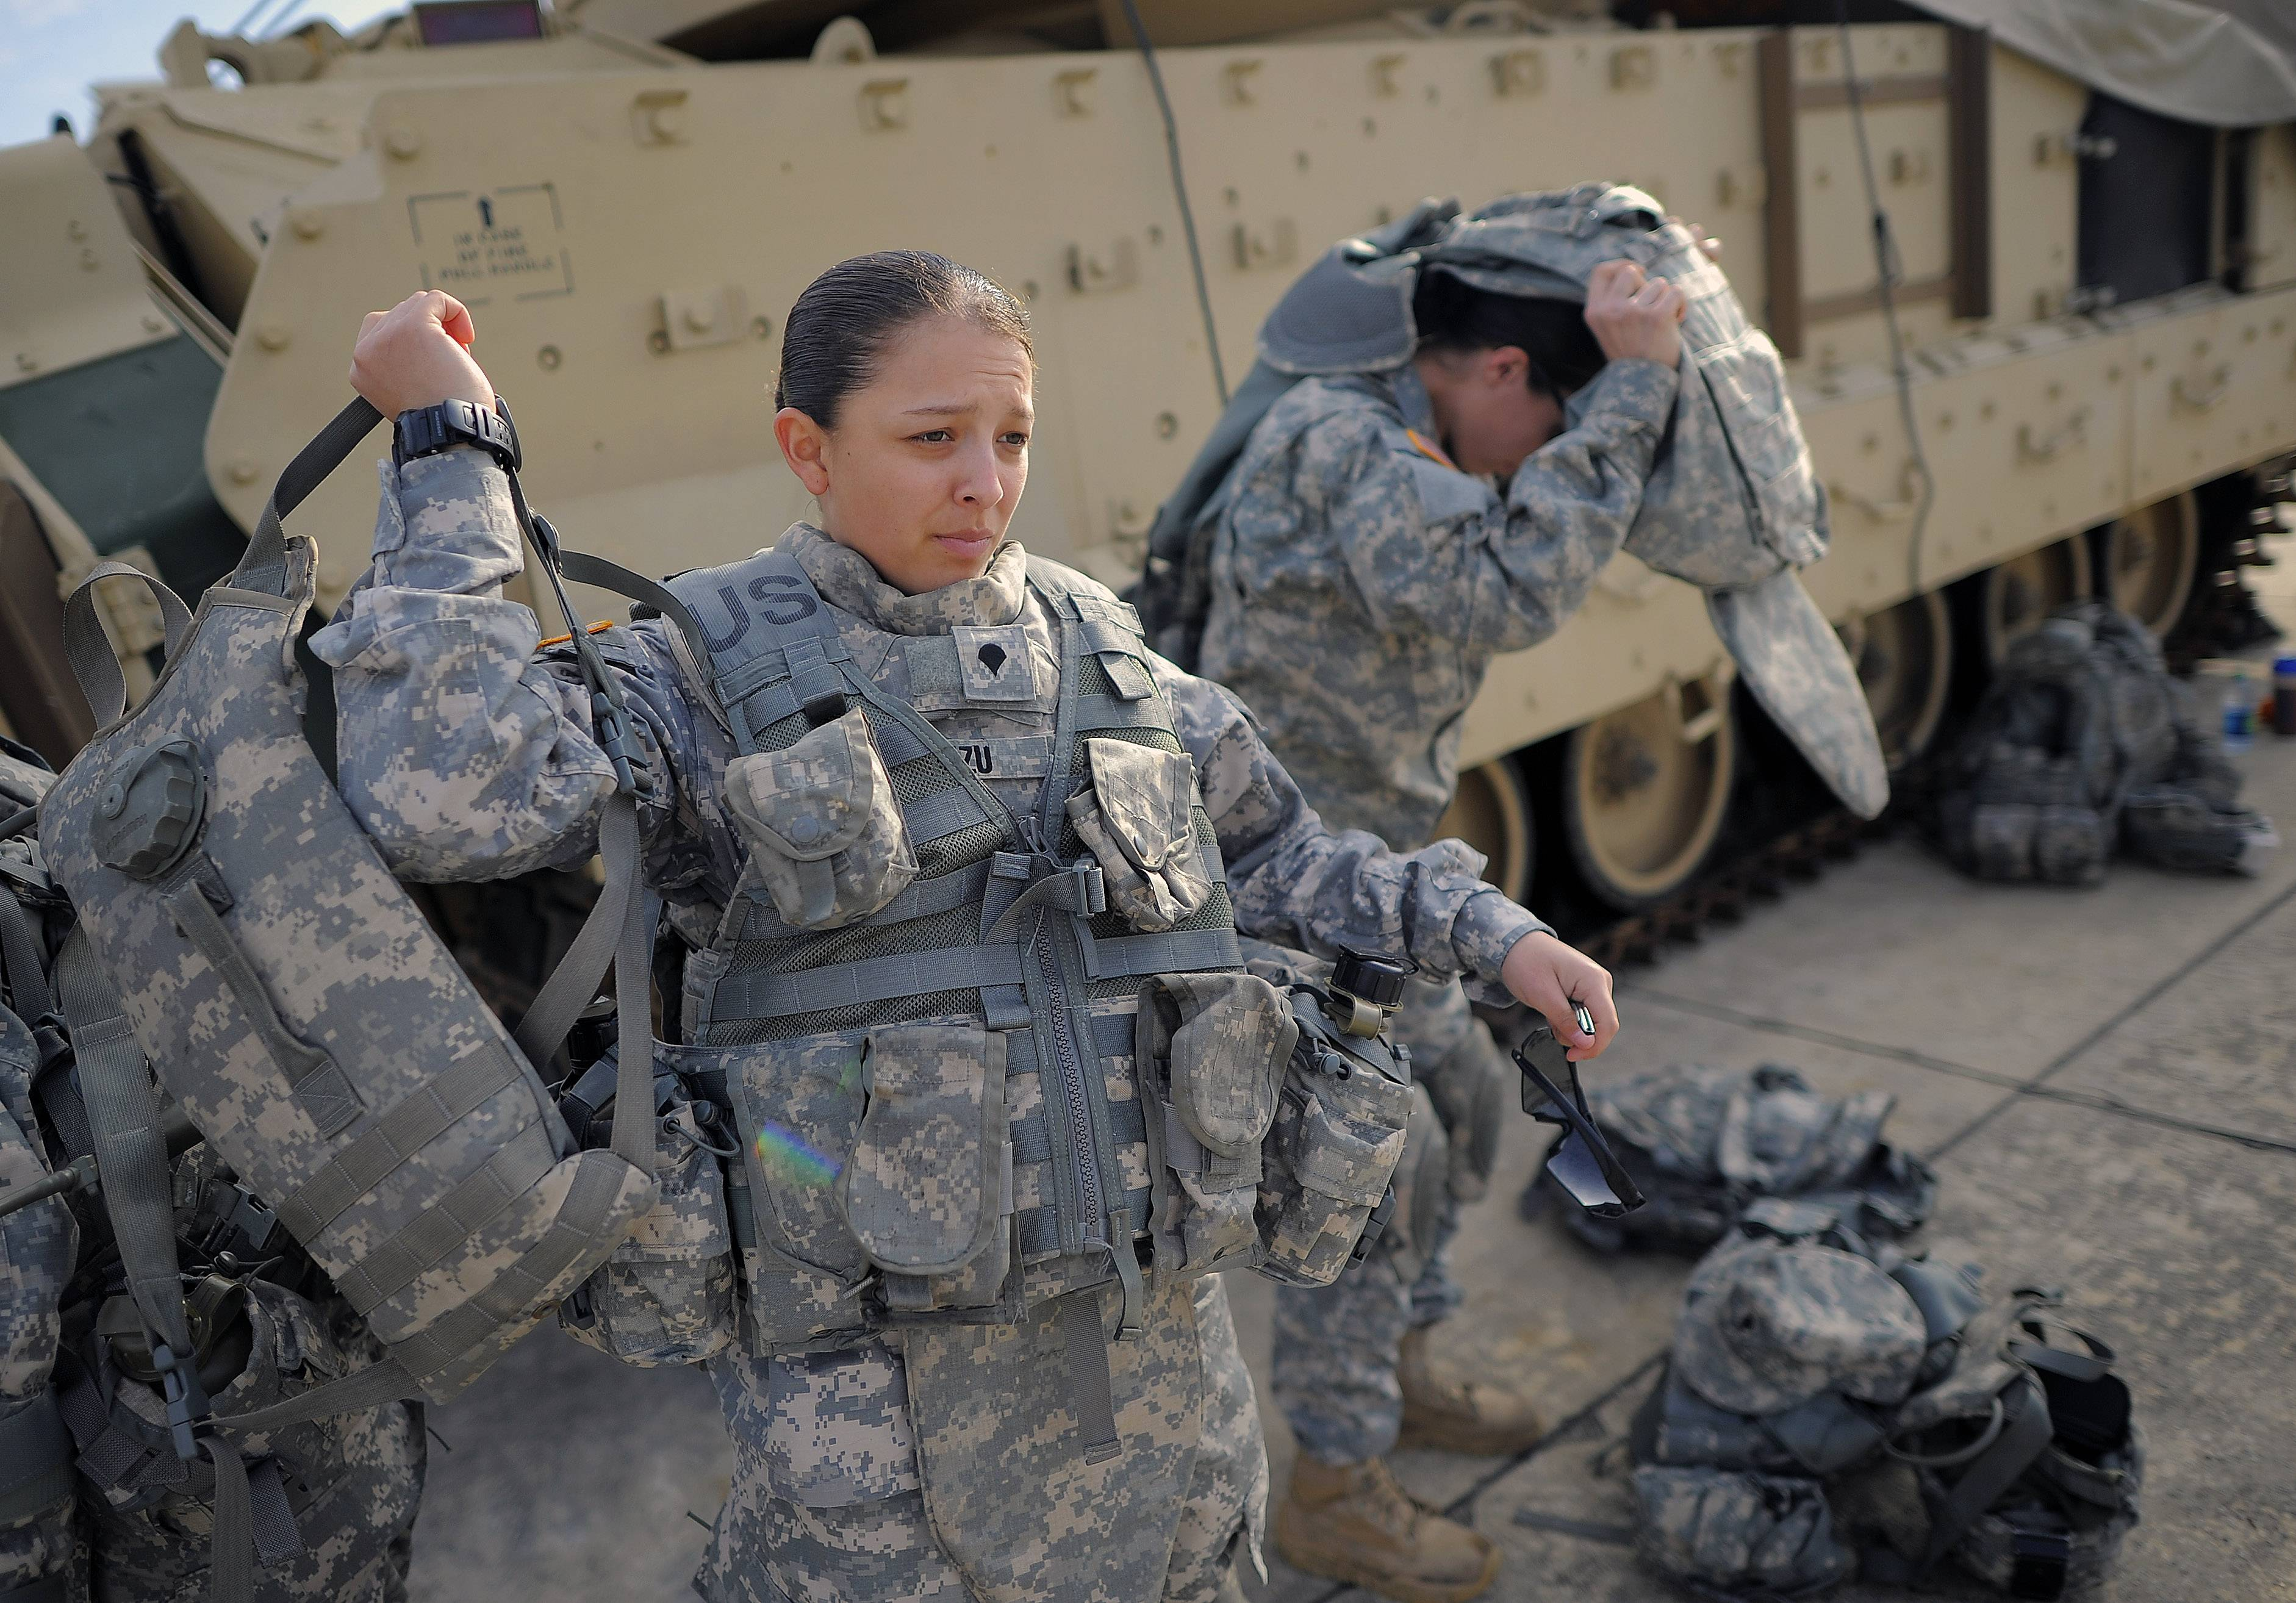 Army study gives women taste of combat tasks